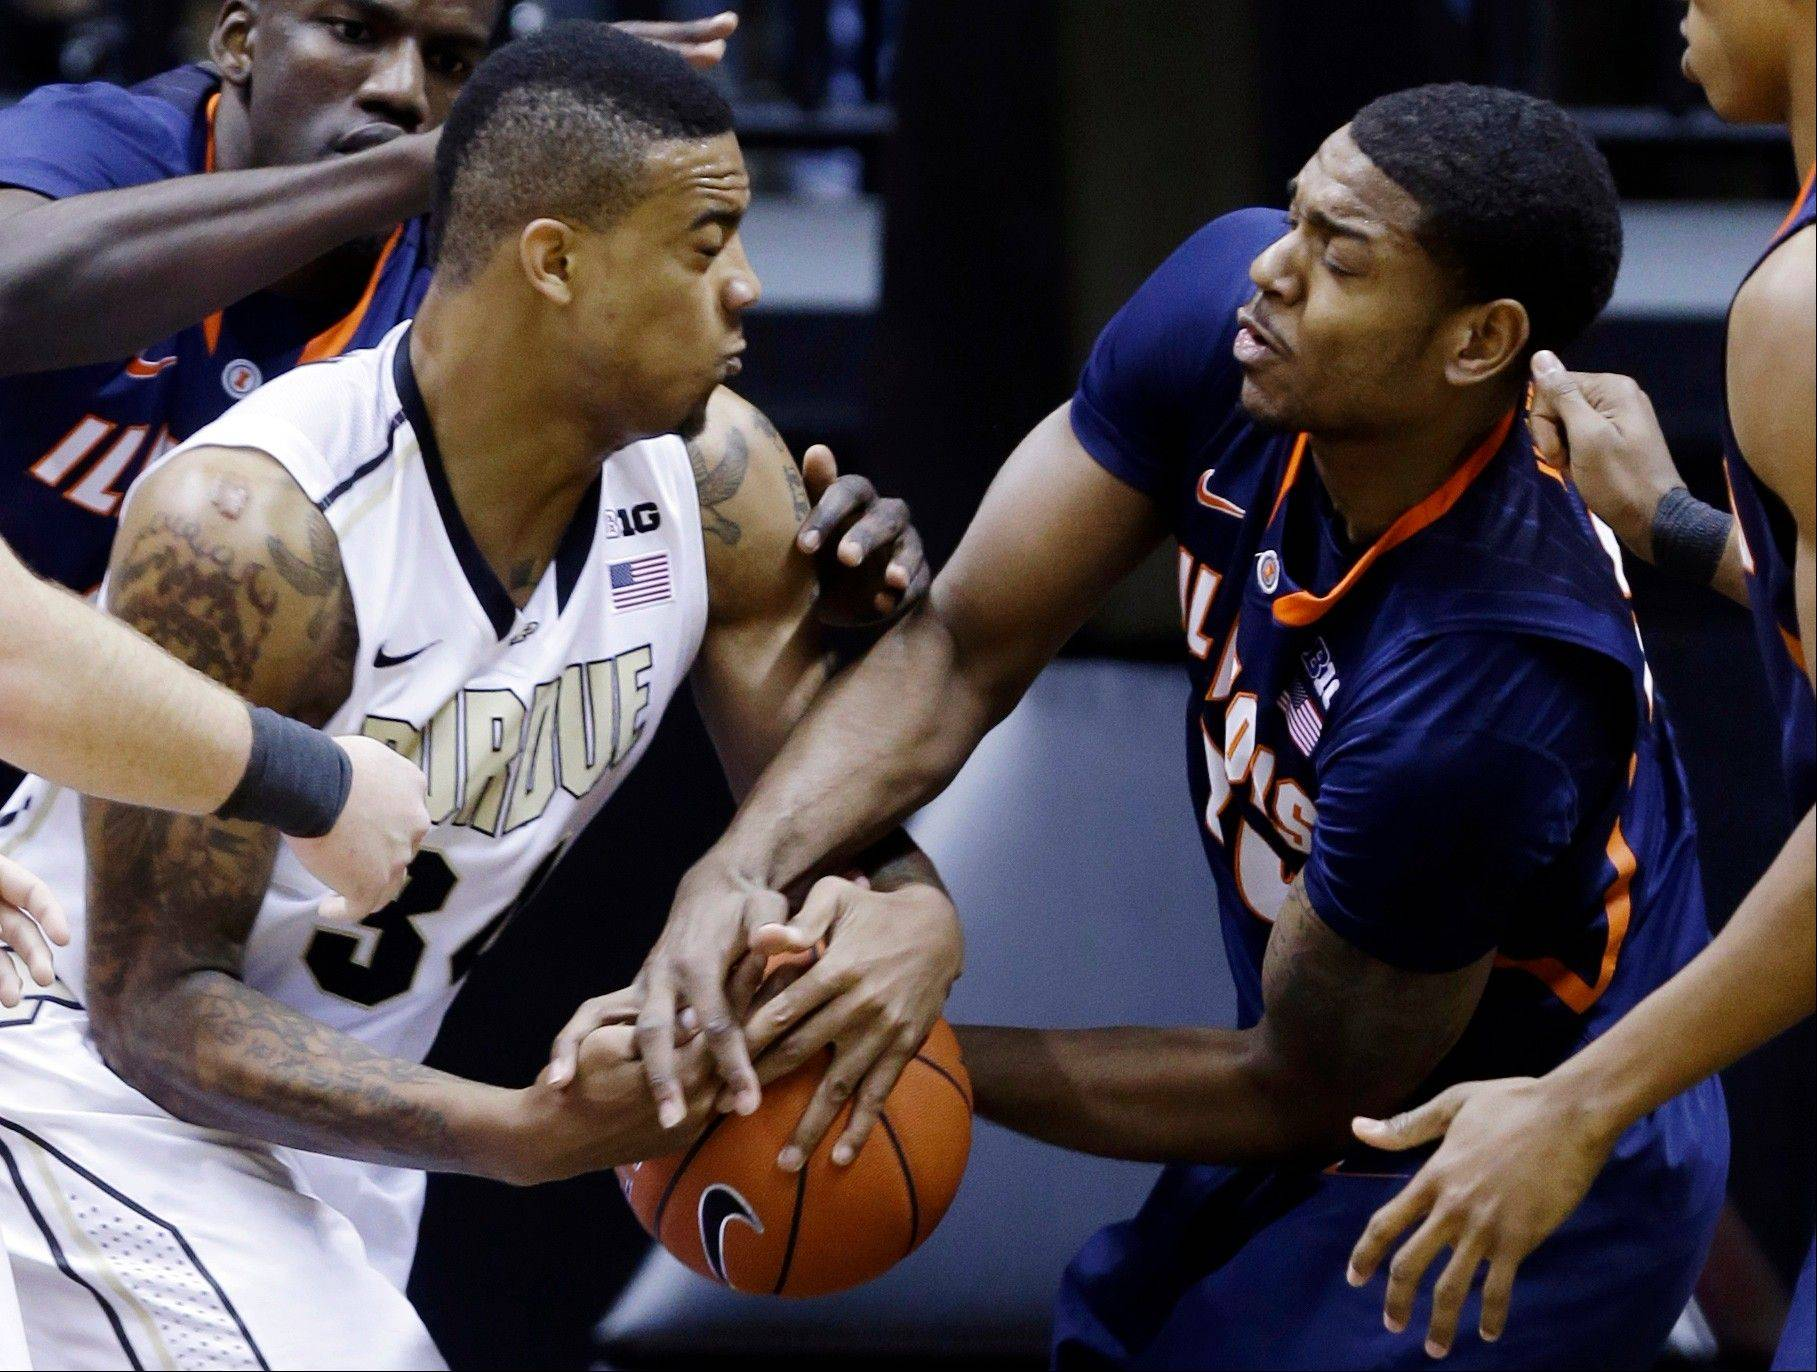 Purdue forward Jacob Lawson, left, and Illinois guard Myke Henry fight for a rebound Wednesday night in West Lafayette, Ind. Purdue beat the No. 11 Illini 68-61